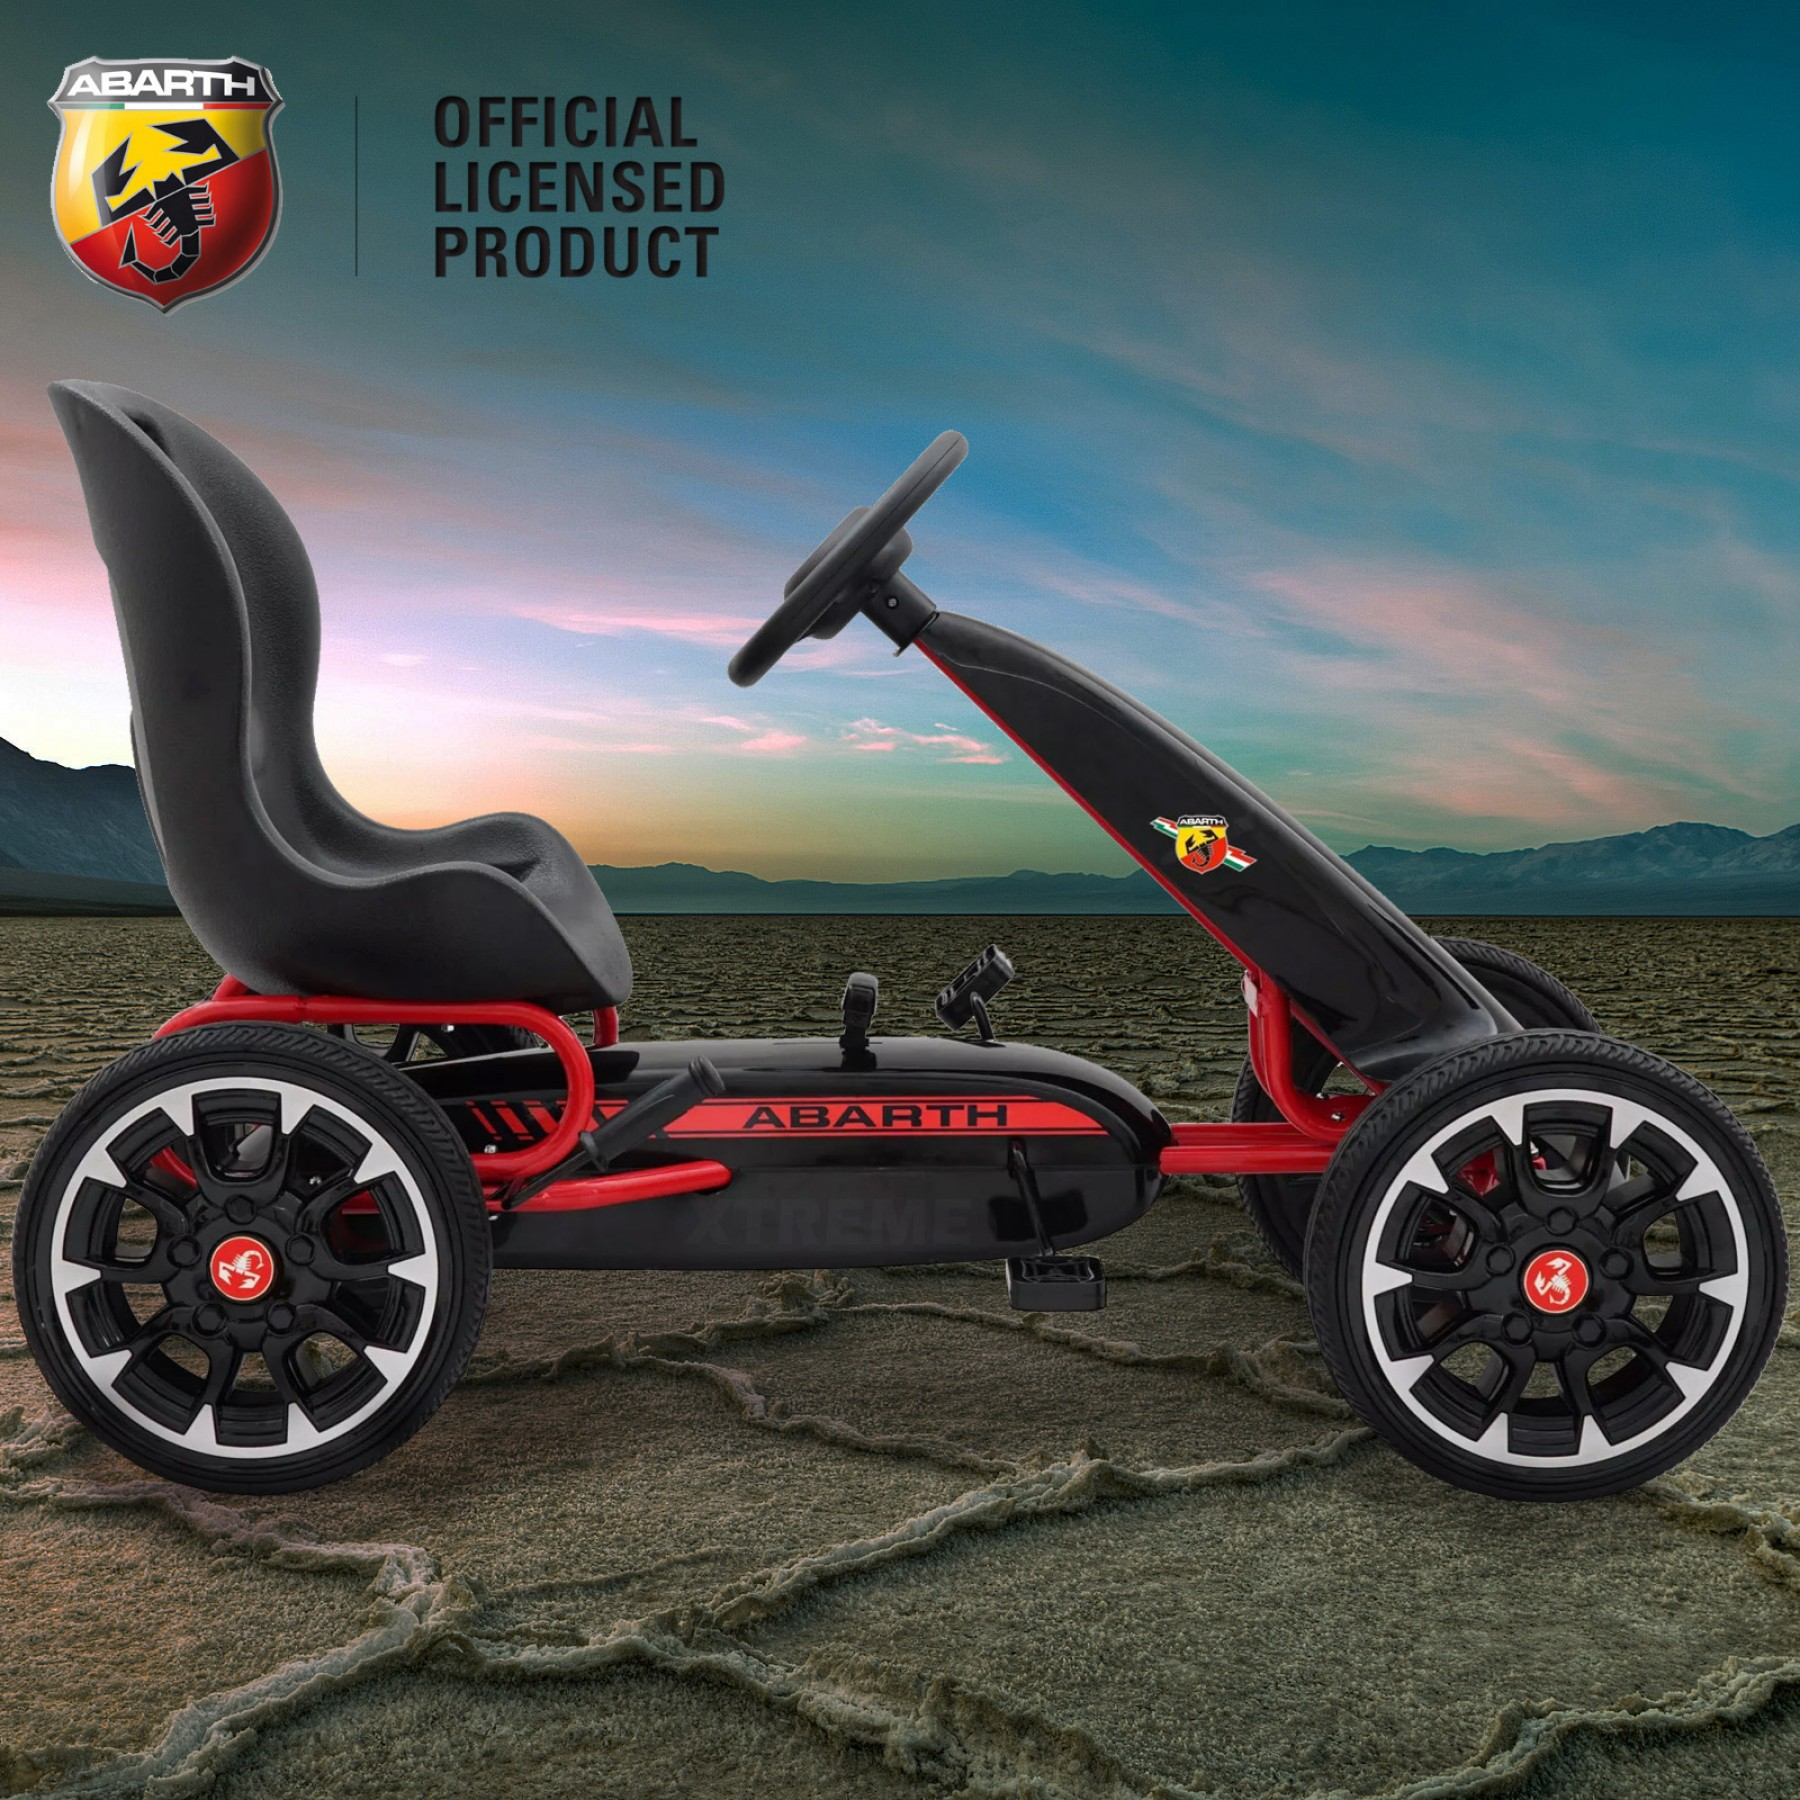 Xtreme Kids Official Licensed Abarth Pedal Go Kart with Hand Brake in Black